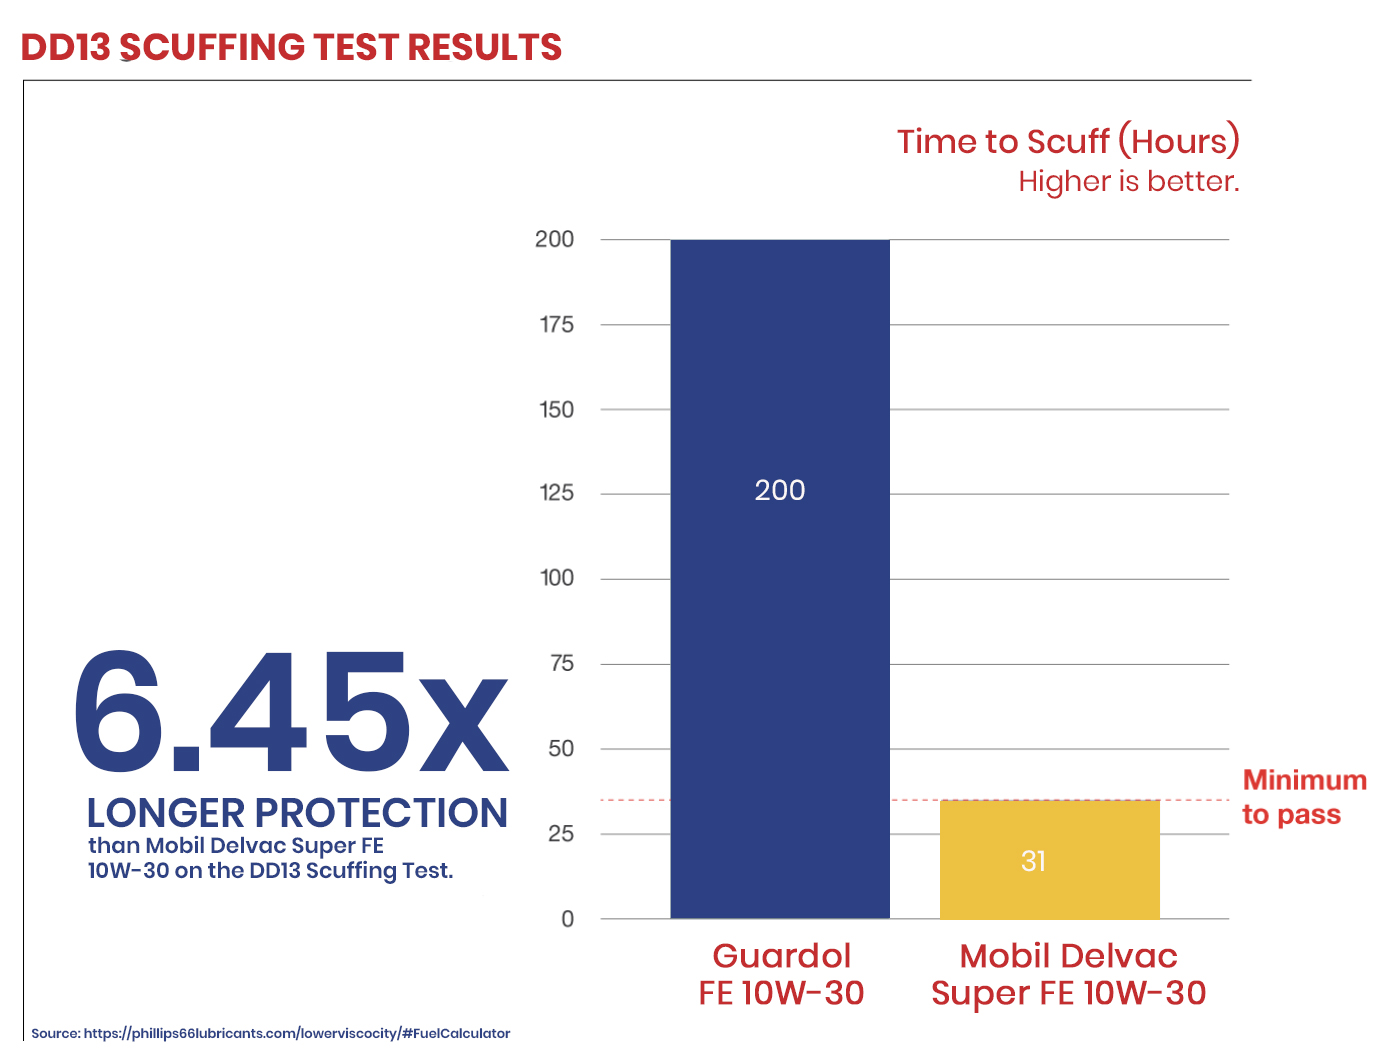 DD13 Scuffing Test Results